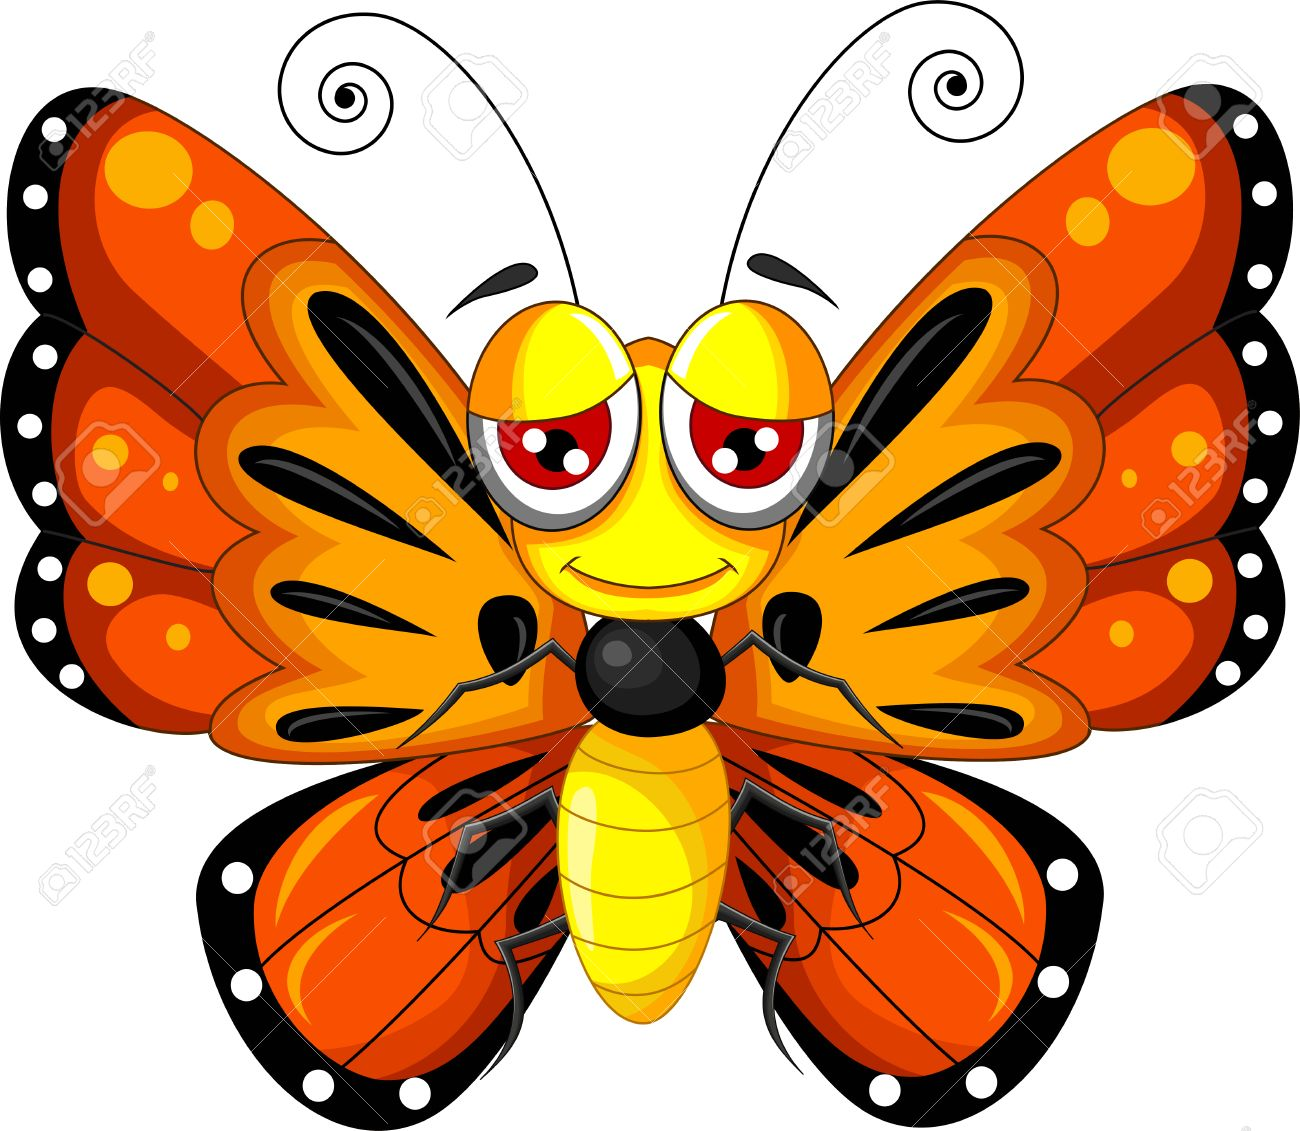 funny butterfly cartoon royalty free cliparts vectors and stock rh 123rf com butterfly cartoon images free download cartoon butterfly images